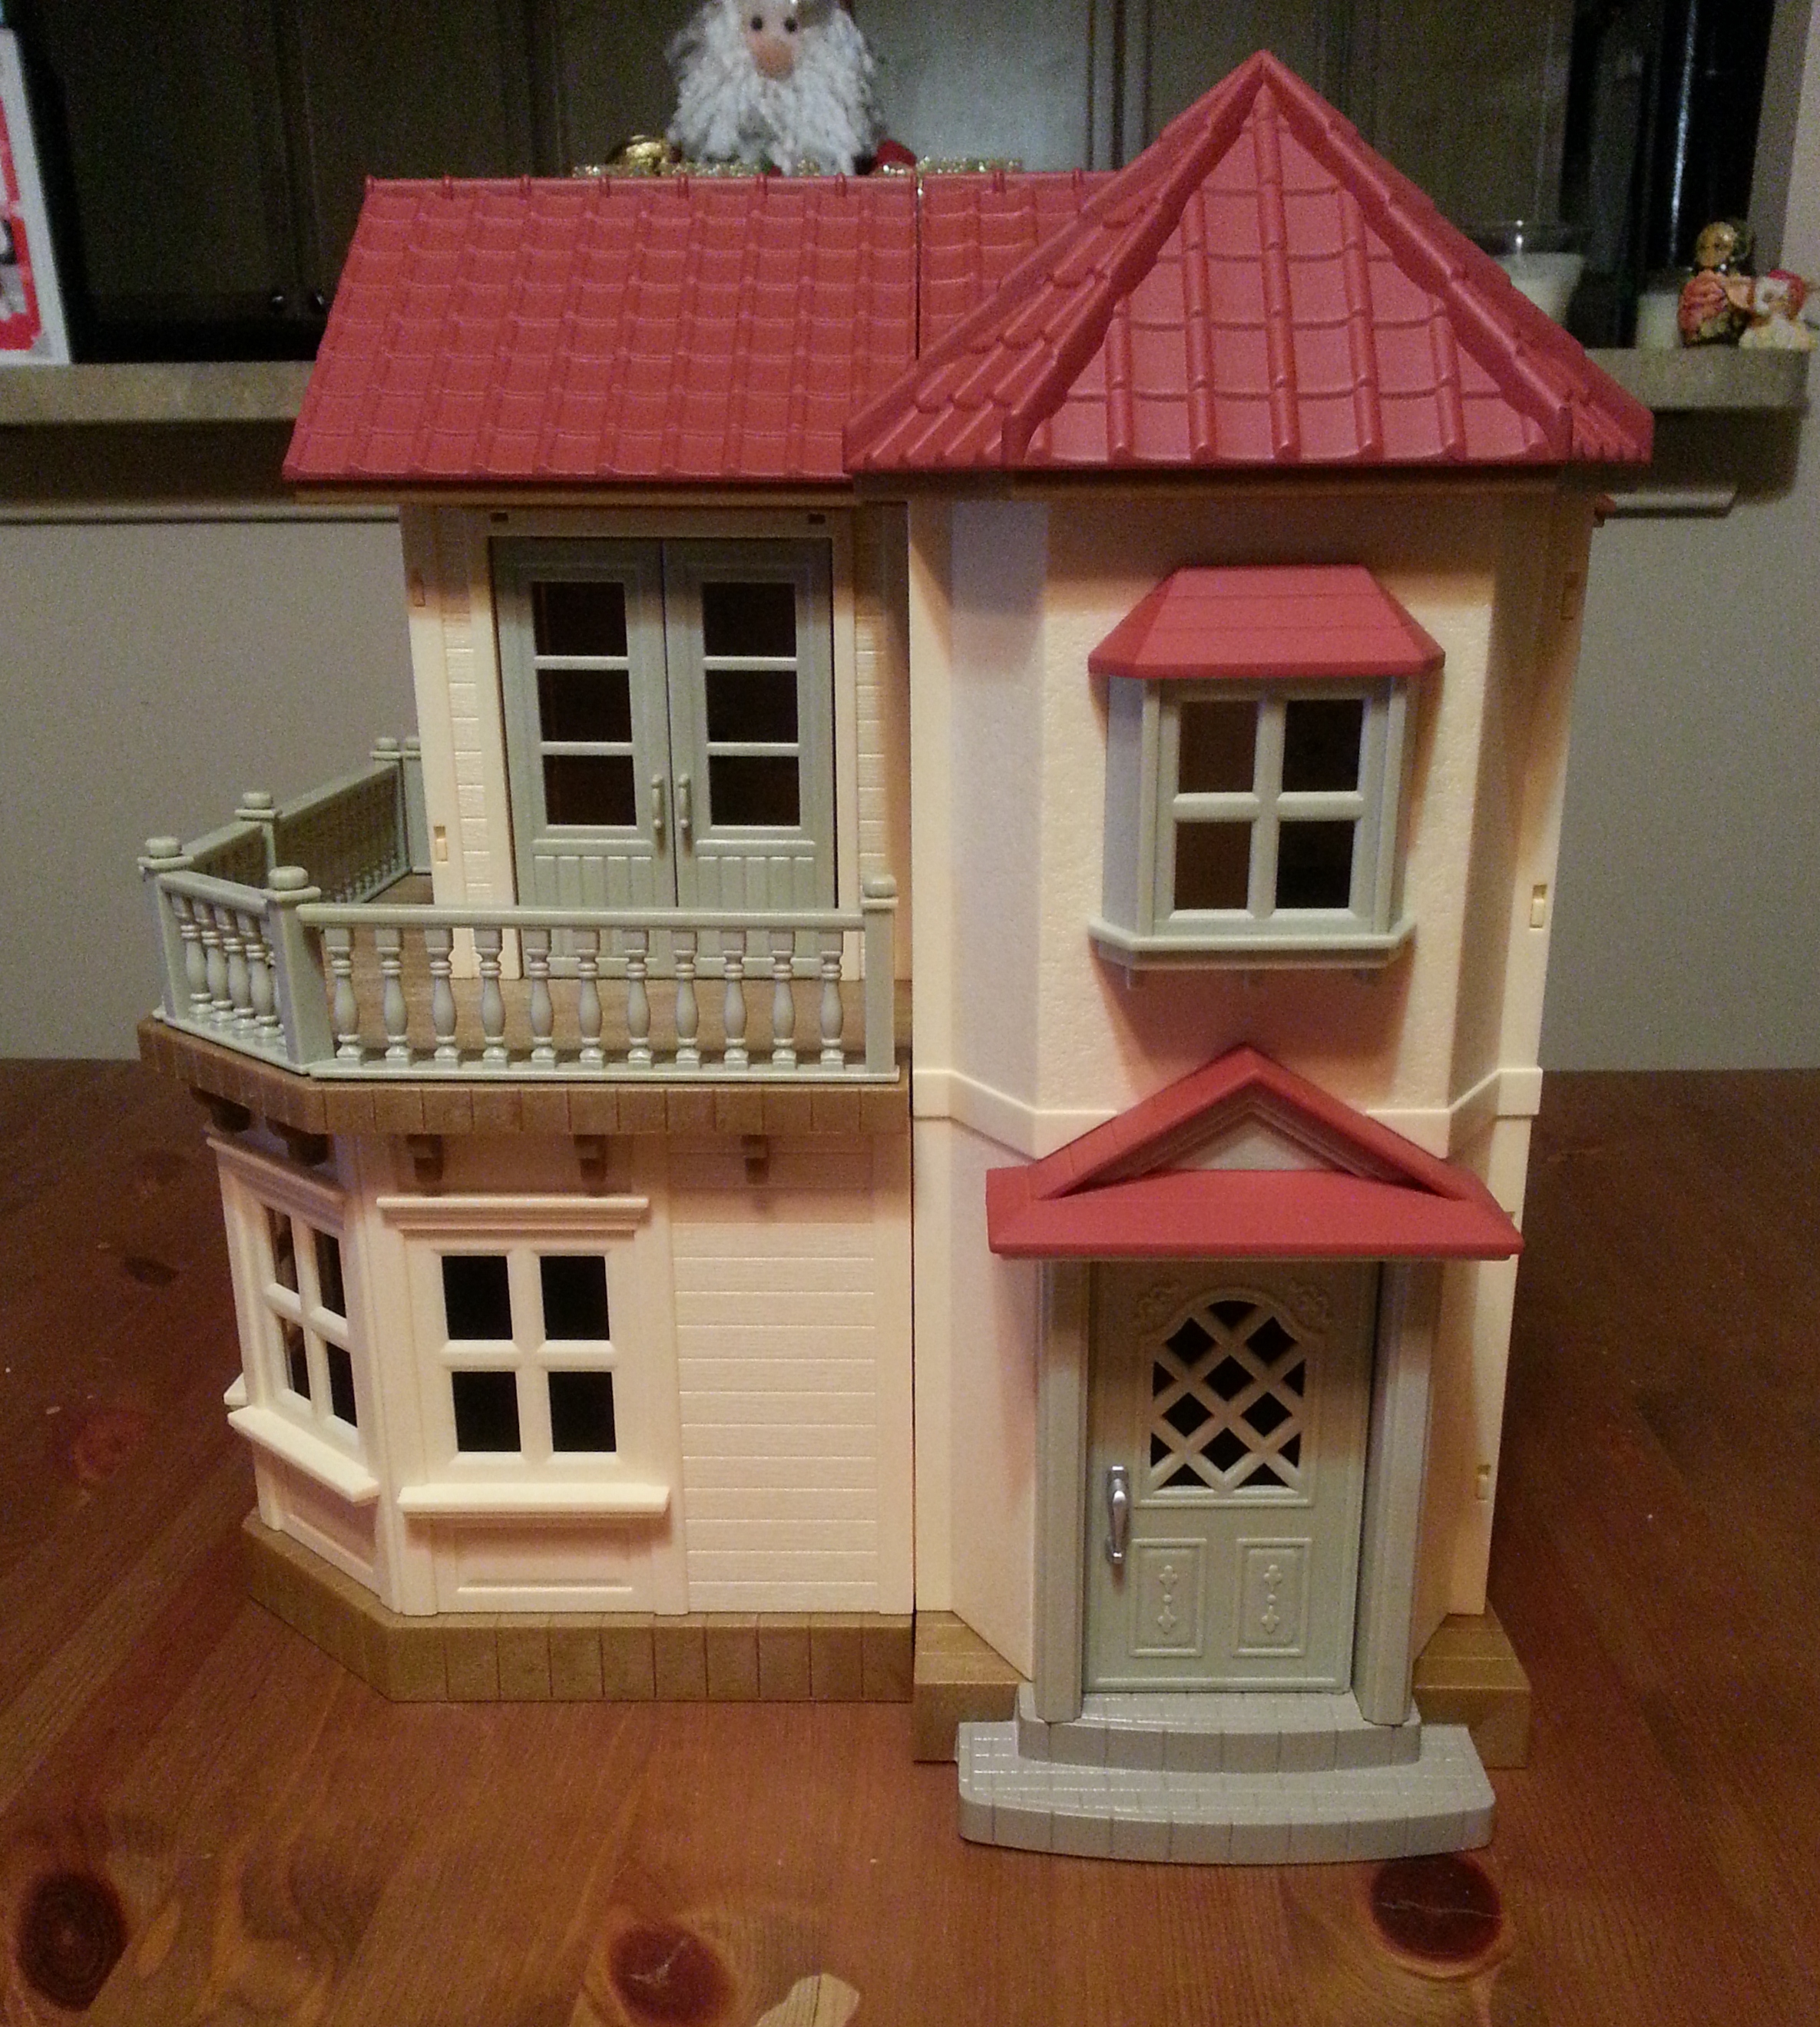 Picturesque Front Calico Introduction Calico Critters House Toys R Us Calico Critters House Replacement Parts baby Calico Critters House